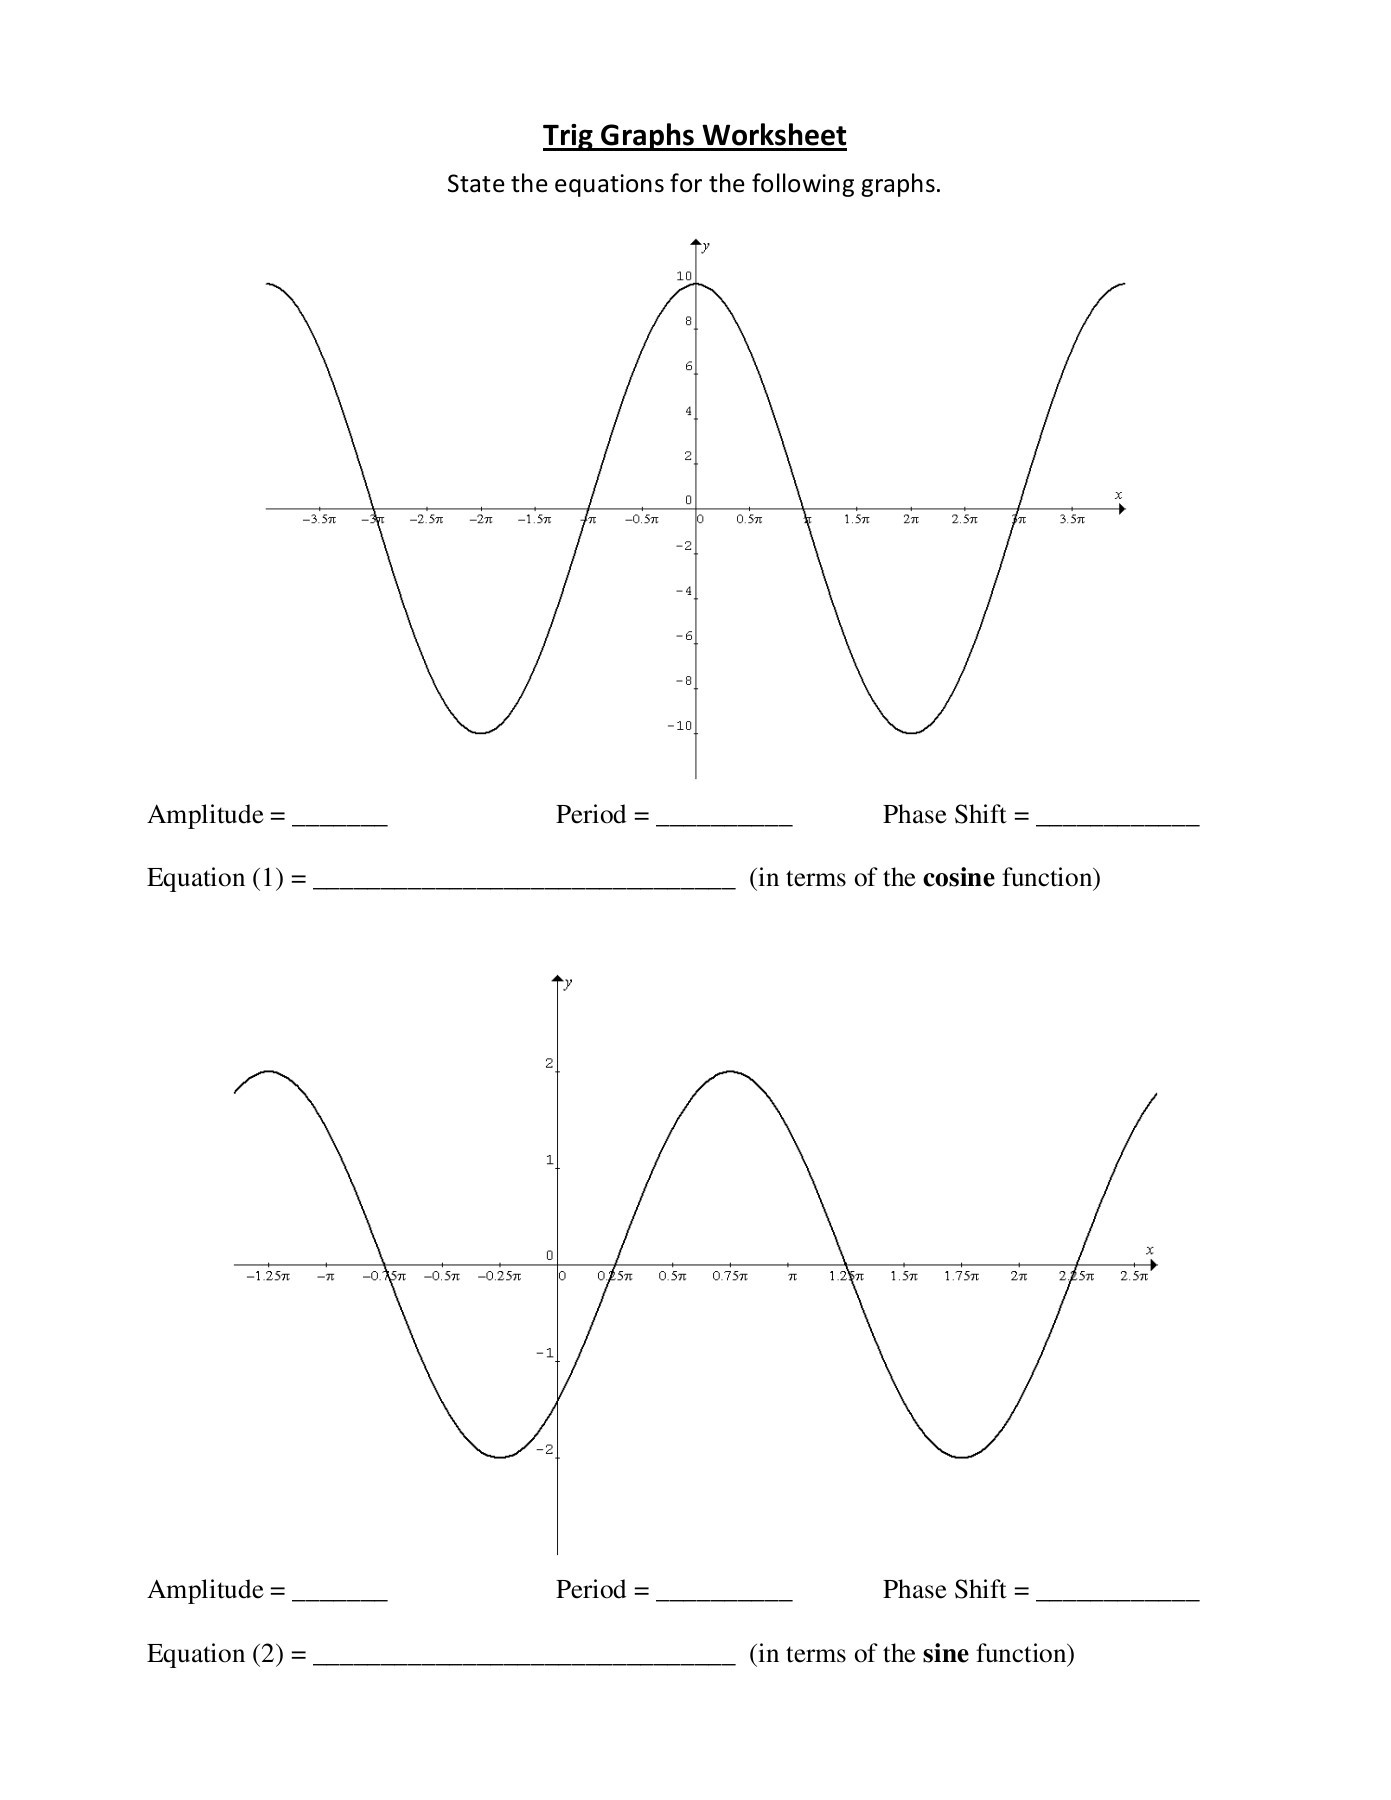 Amplitude And Period For Sine And Cosine Functions